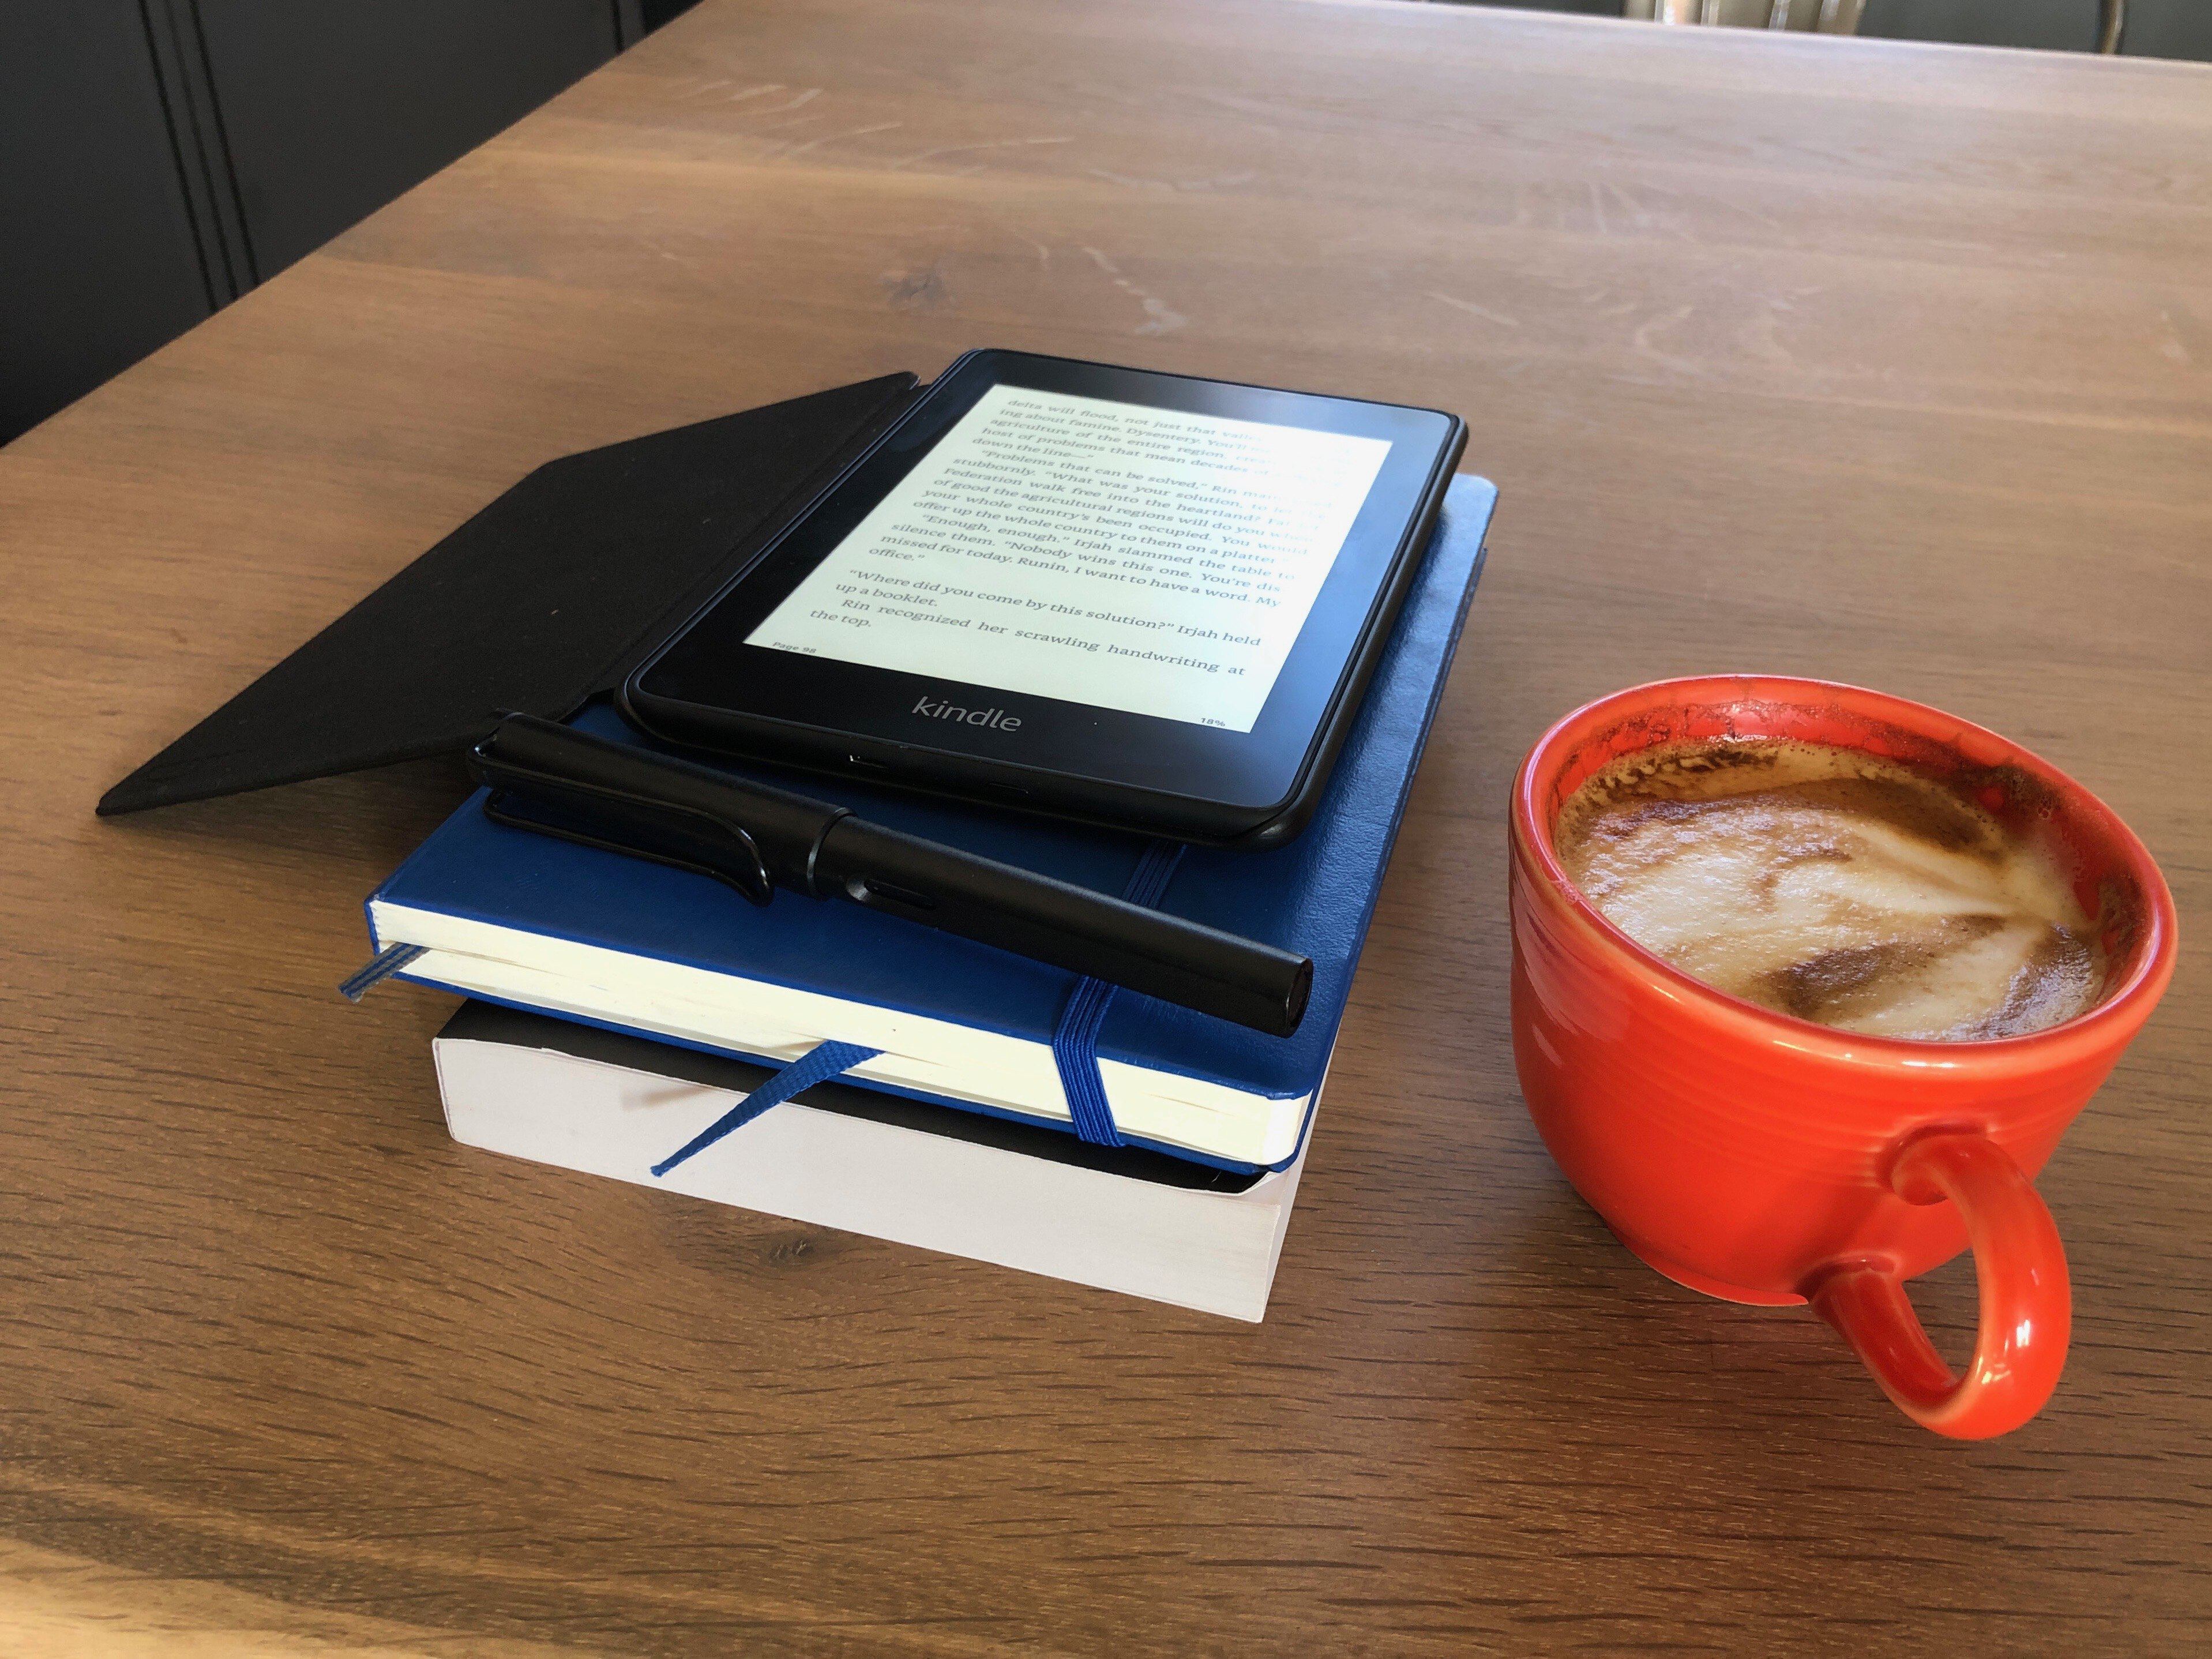 Cappuccino in an orange cup, beside a stack of a Kindle, notebook, and paperback